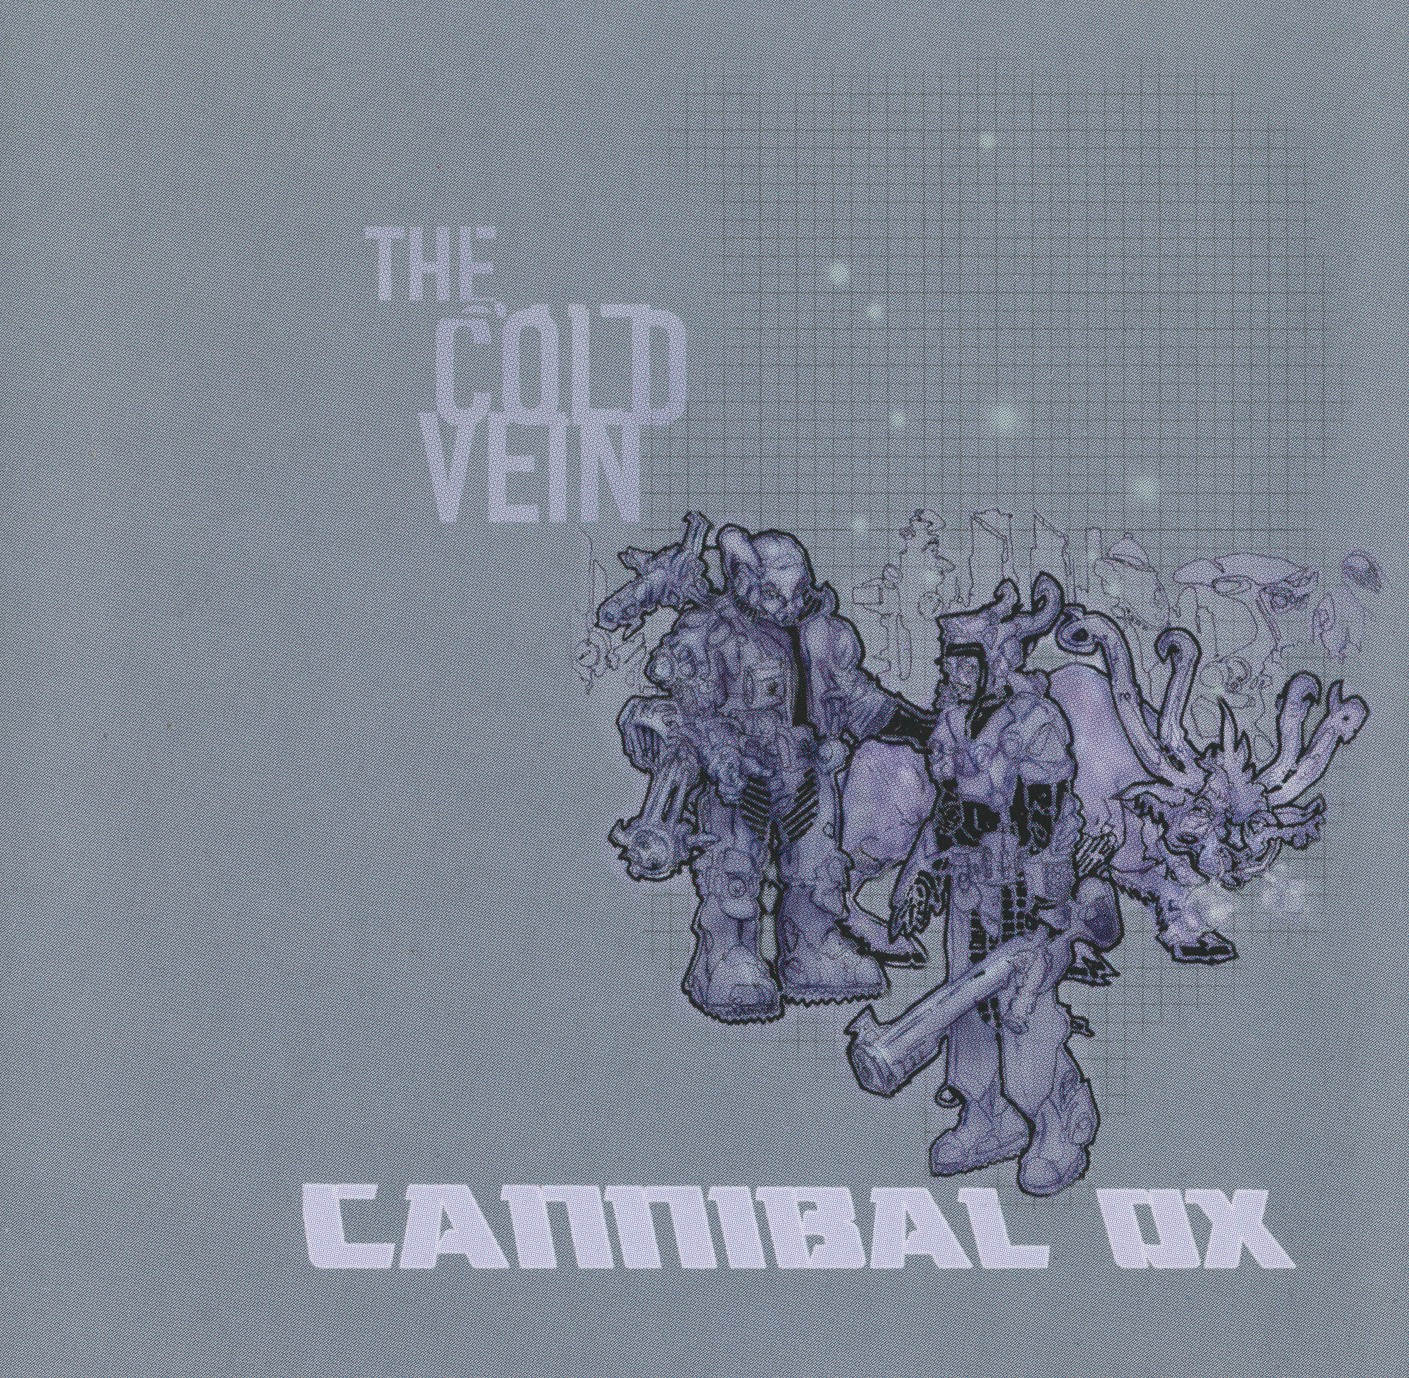 Cannibal Ox - The Cold Vein (2001)